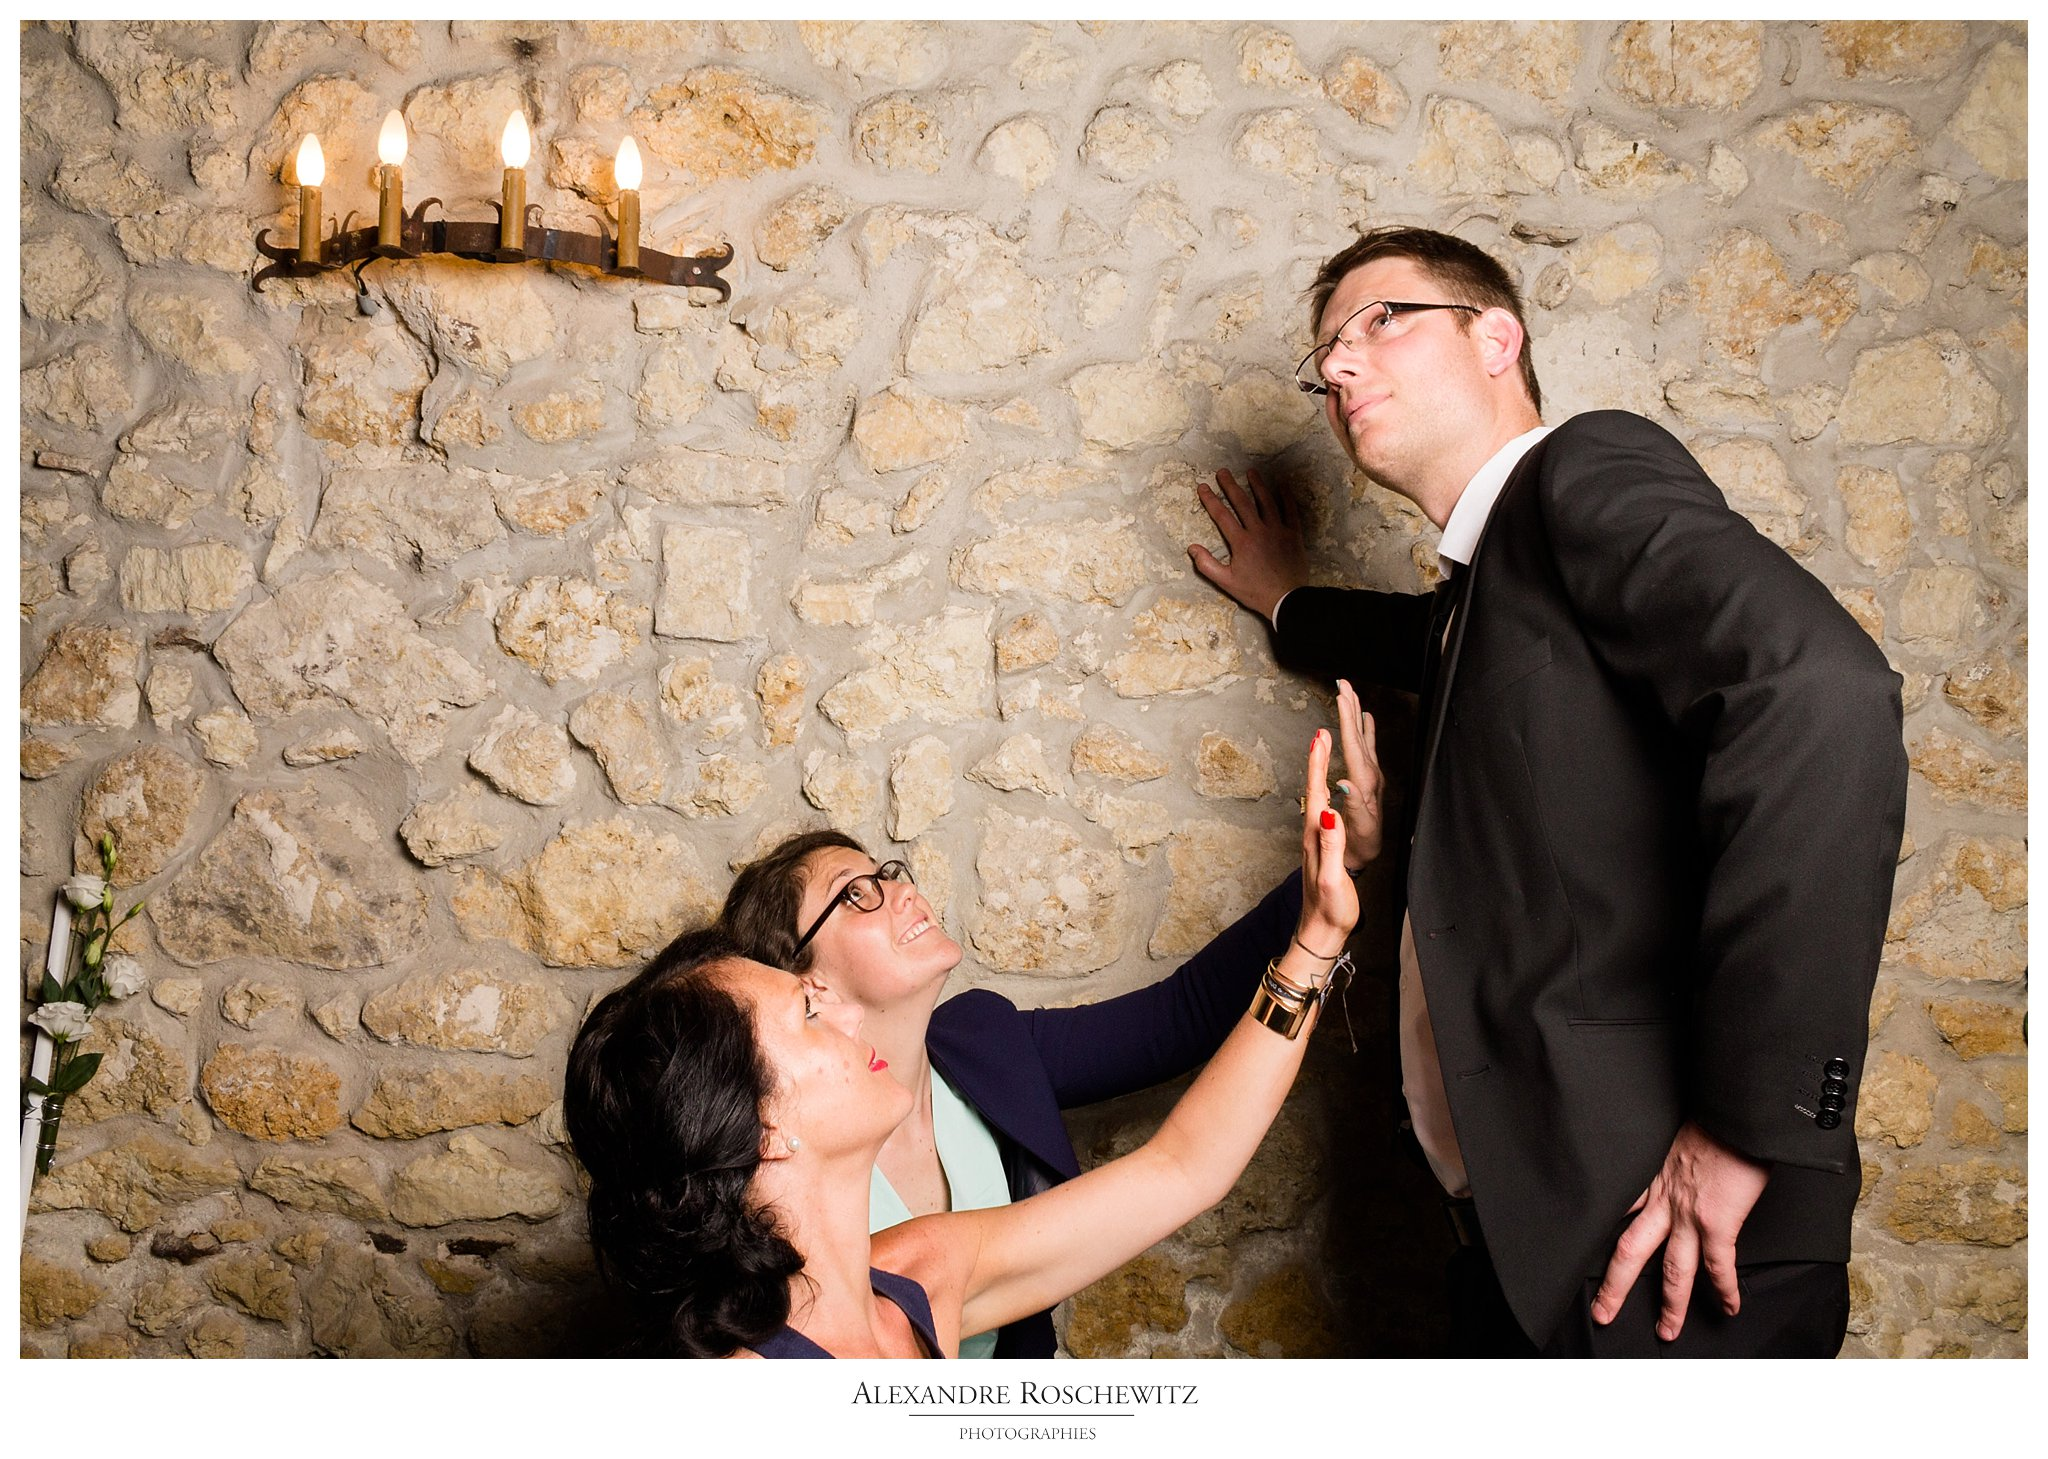 photobooth-mariage-merignac-gironde-maud-anthony-chateau-cujac-alexandre-roschewitz-photographies_1460_2048px